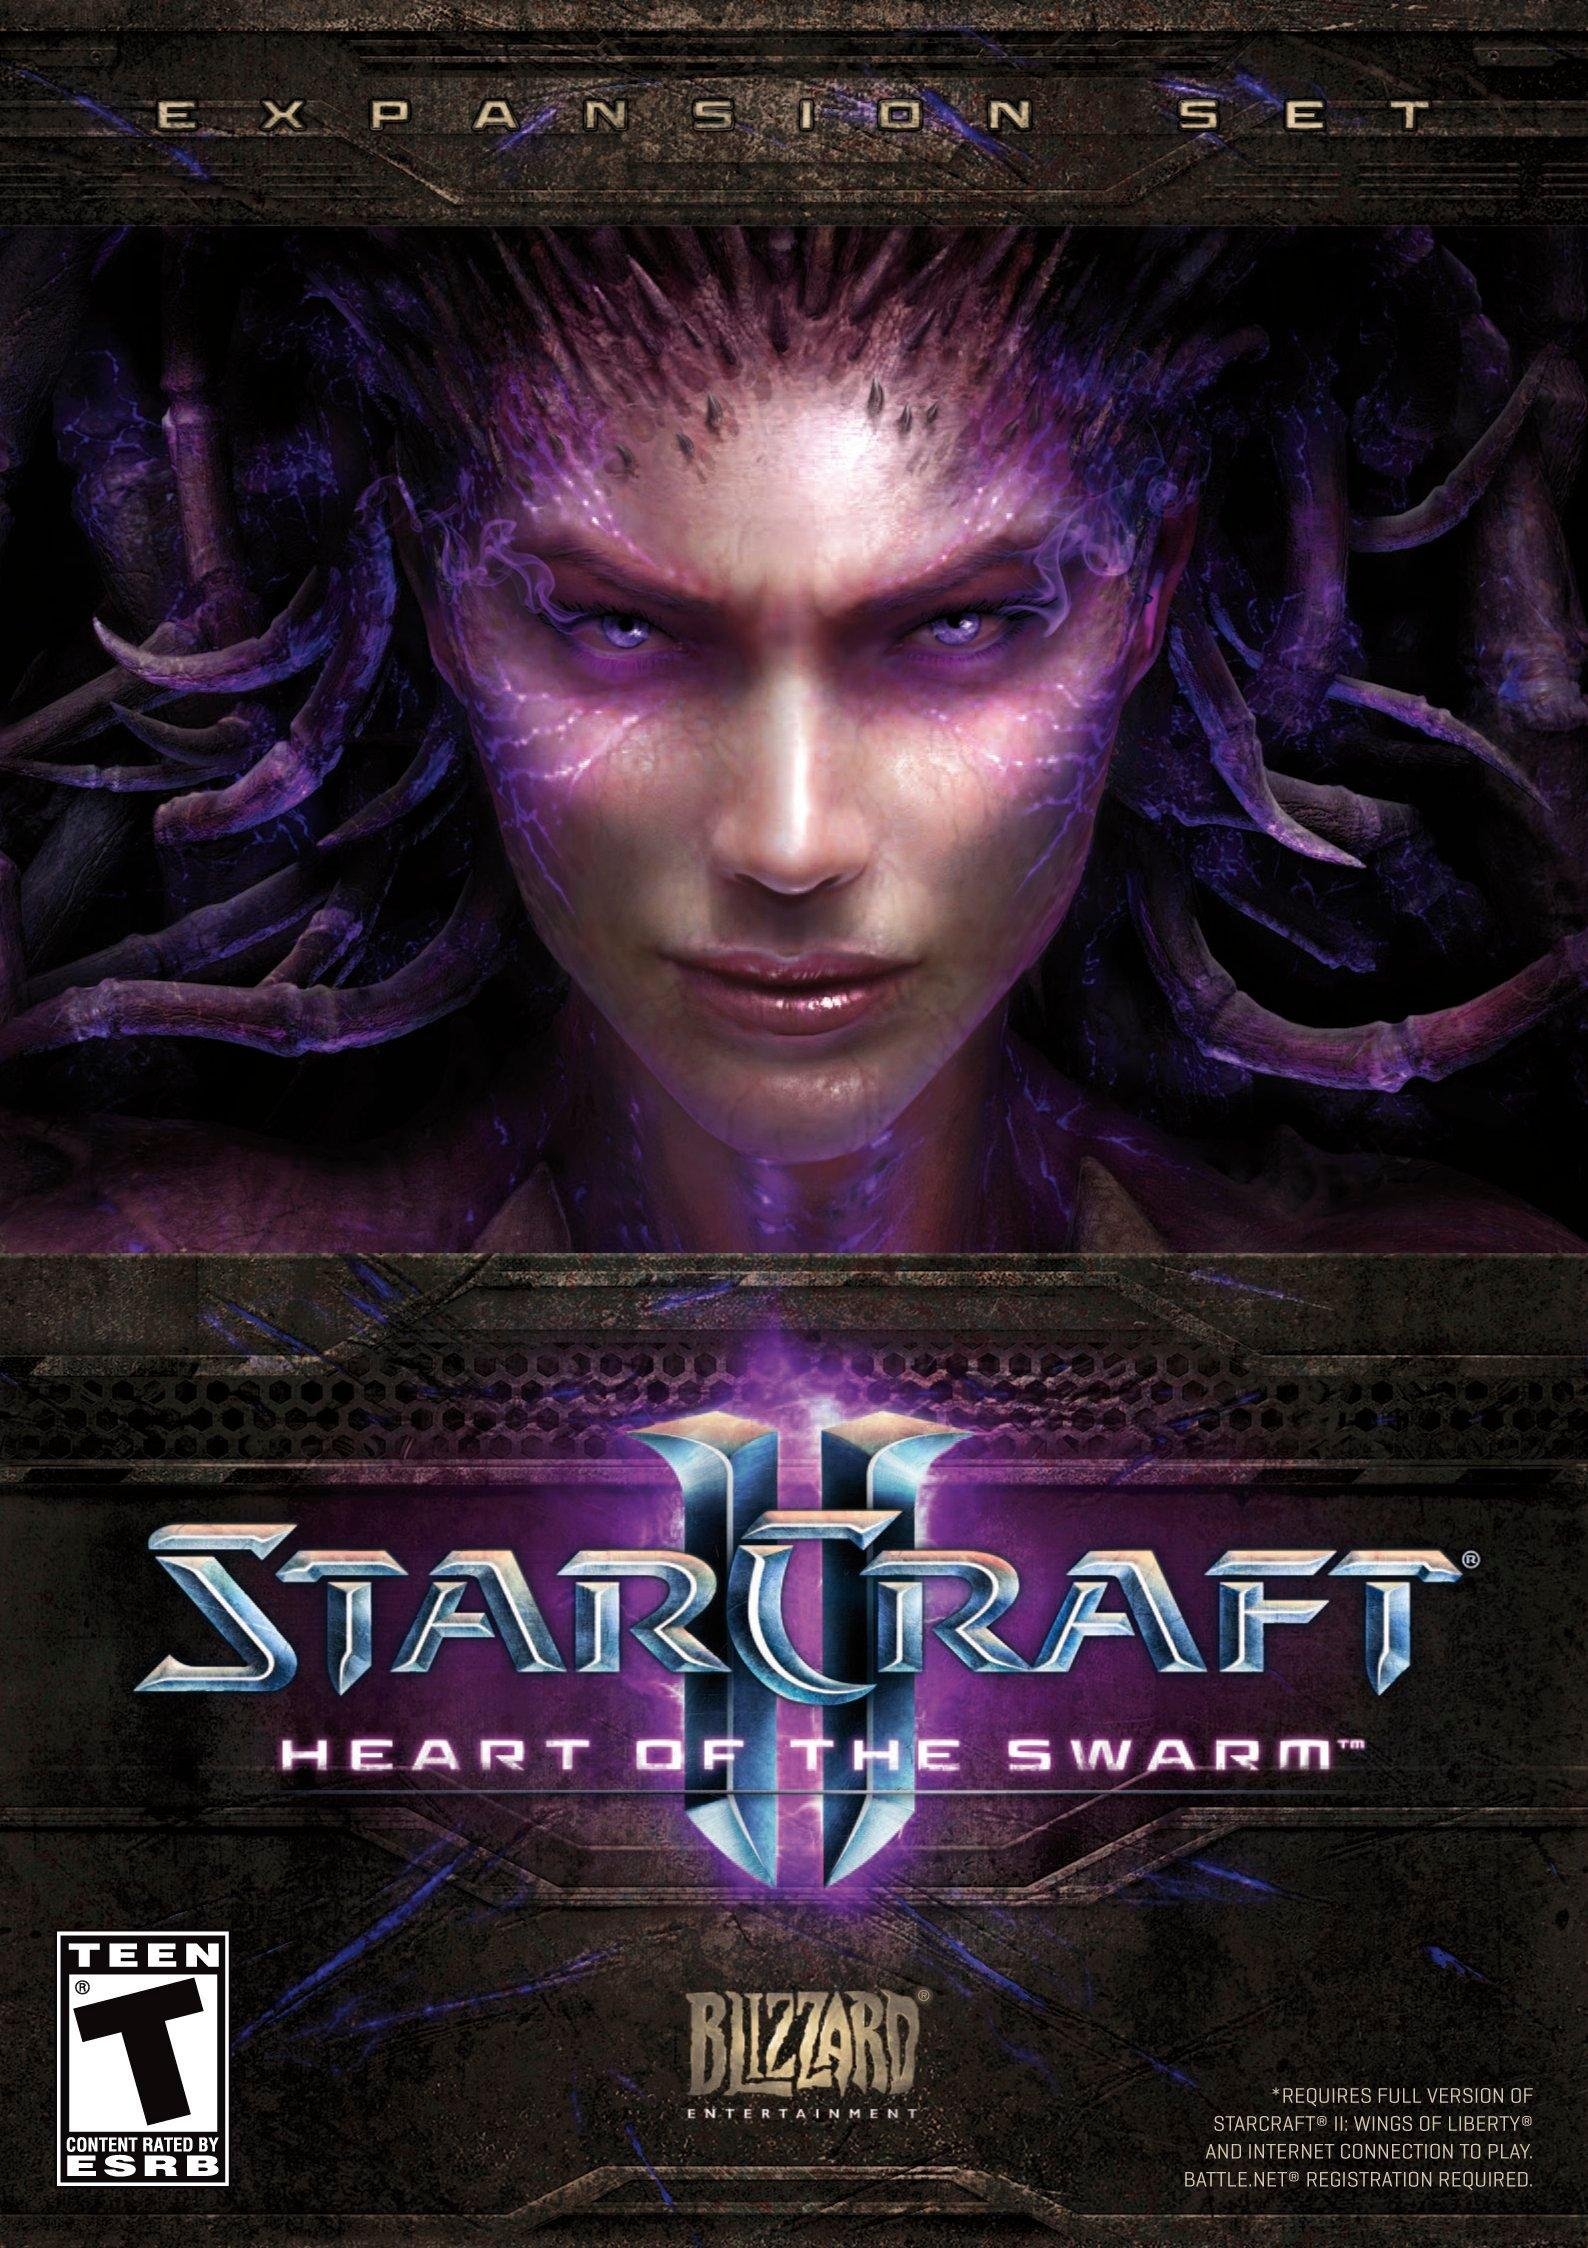 Starcraft II Heart of the Swarm - Starcraft II: Heart of the Swarm | PC